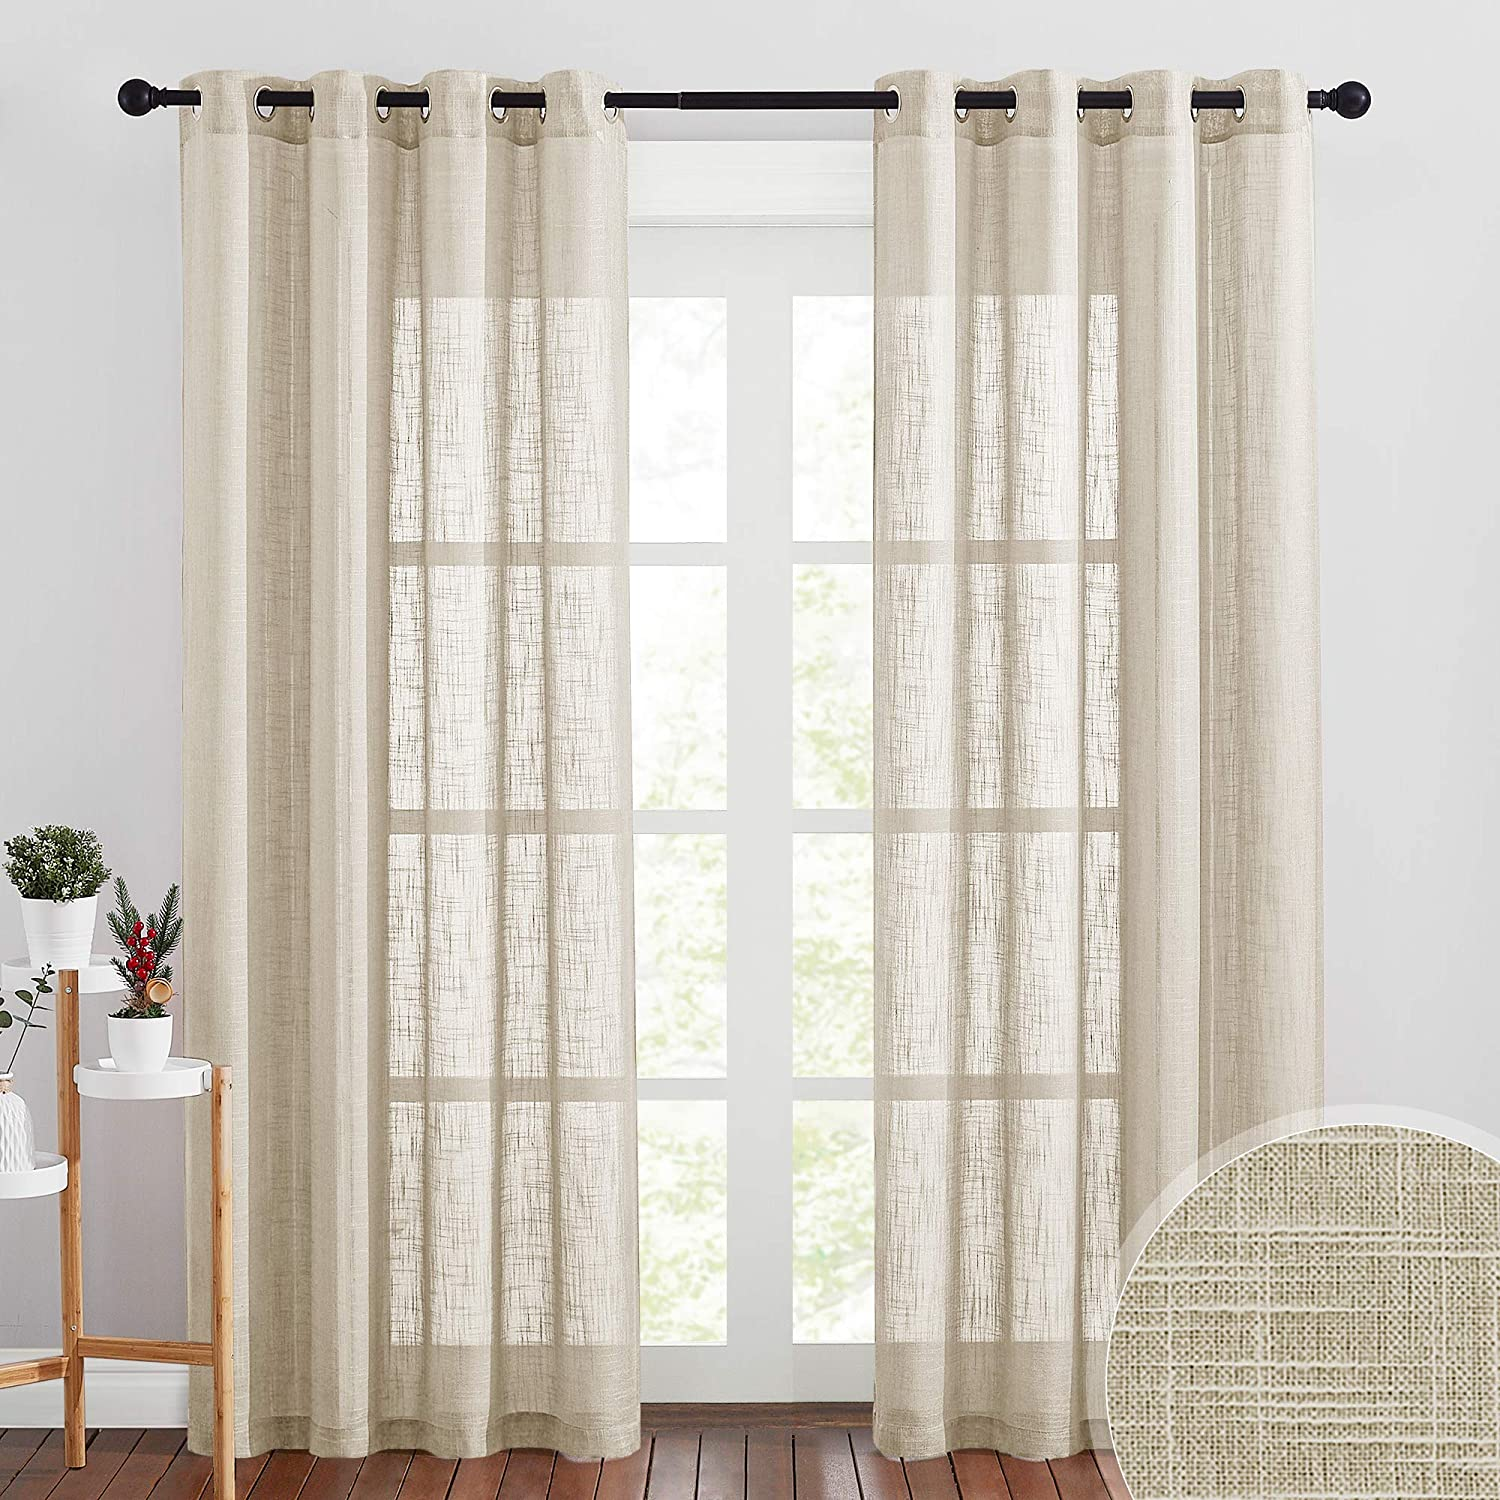 RYB HOME Curtains for Living Room - Subtle Linen Texture Sheet Soften Light for Sunroom Bedroom Family Room Bathroom Sliding Glass Door Window, W 52 x L 90 inch per Panel, 2 Pcs, Taupe